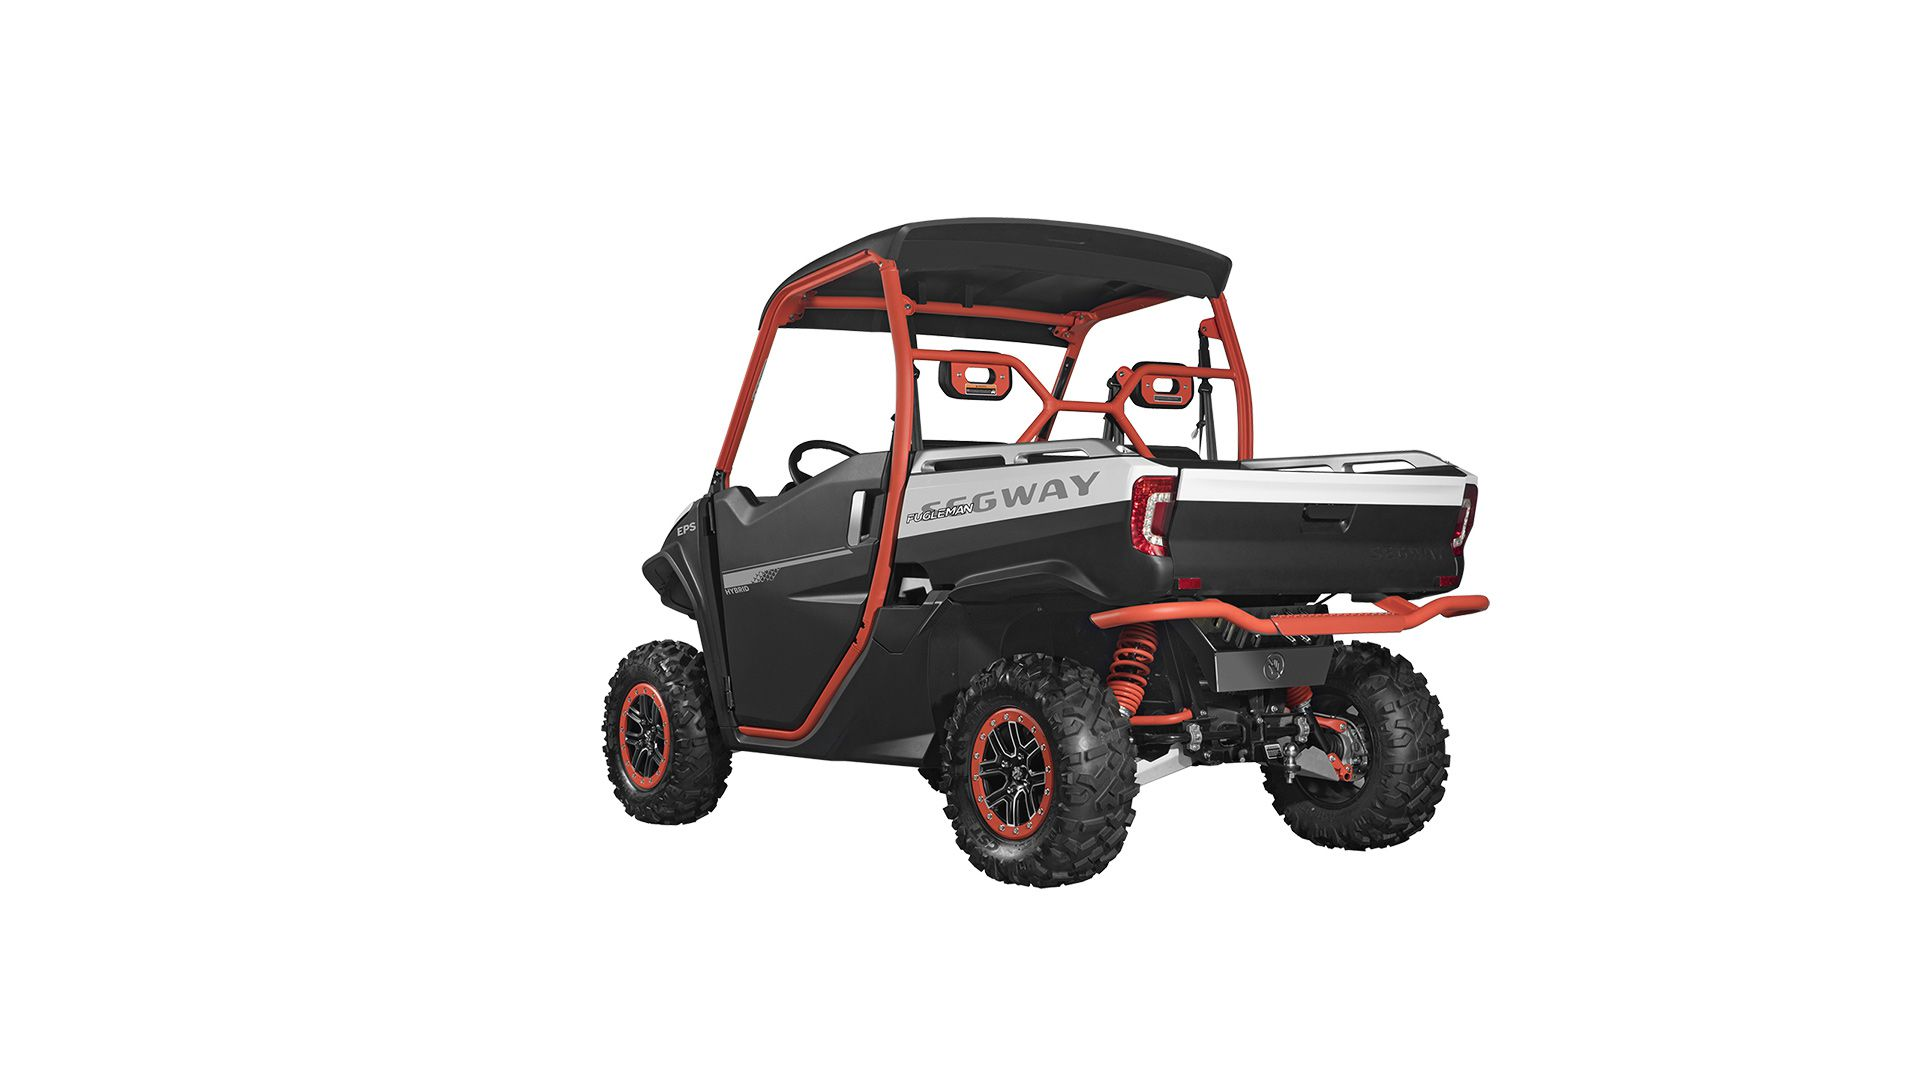 The Fugleman can tow up to 1,700 pounds with its 2-inch standard hitch receiver.